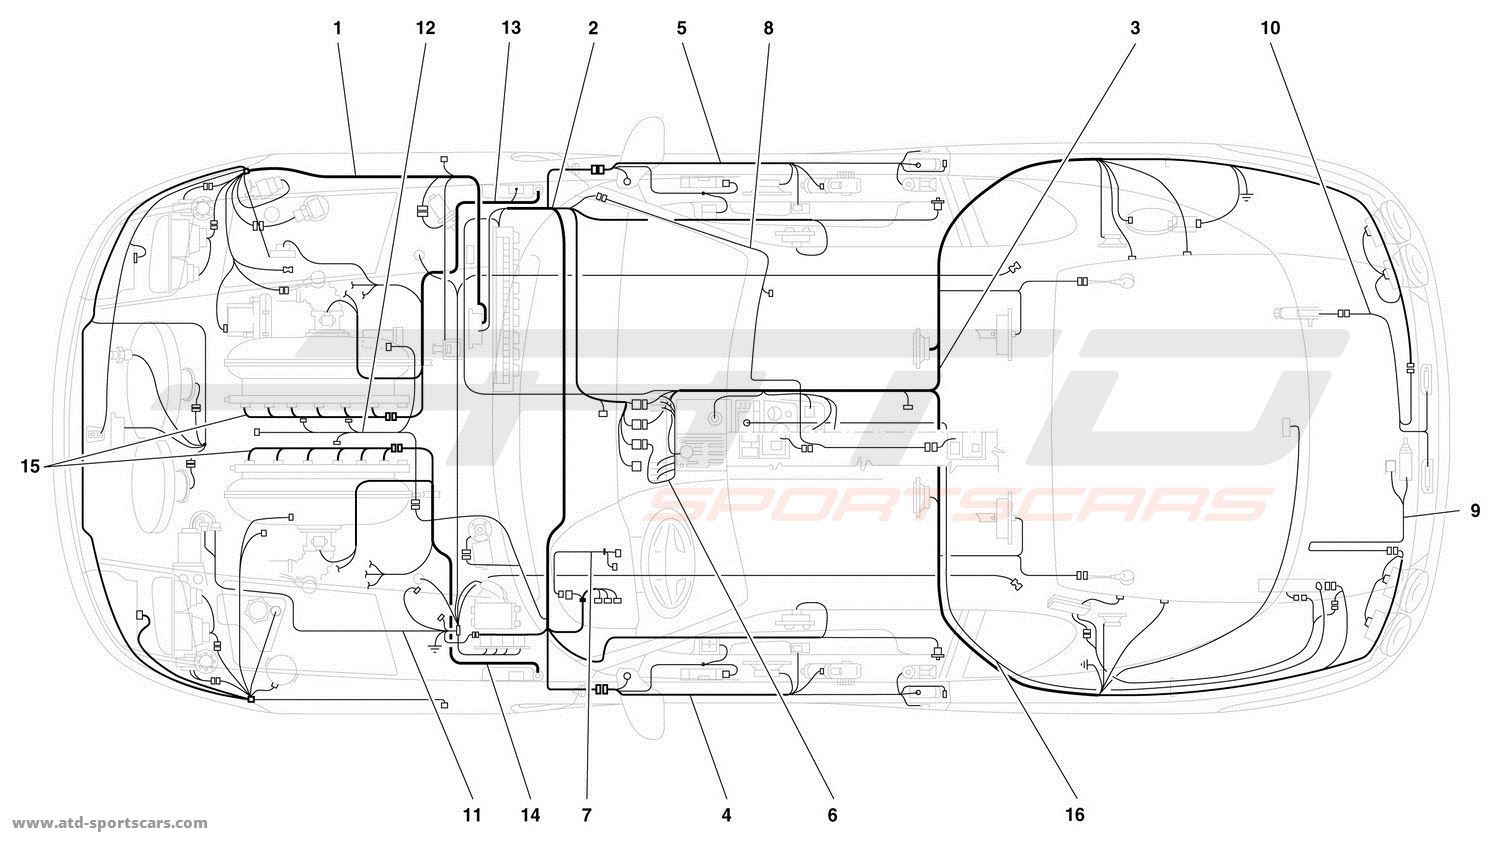 ELECTRICAL SYSTEM -Not for 456 GTA-